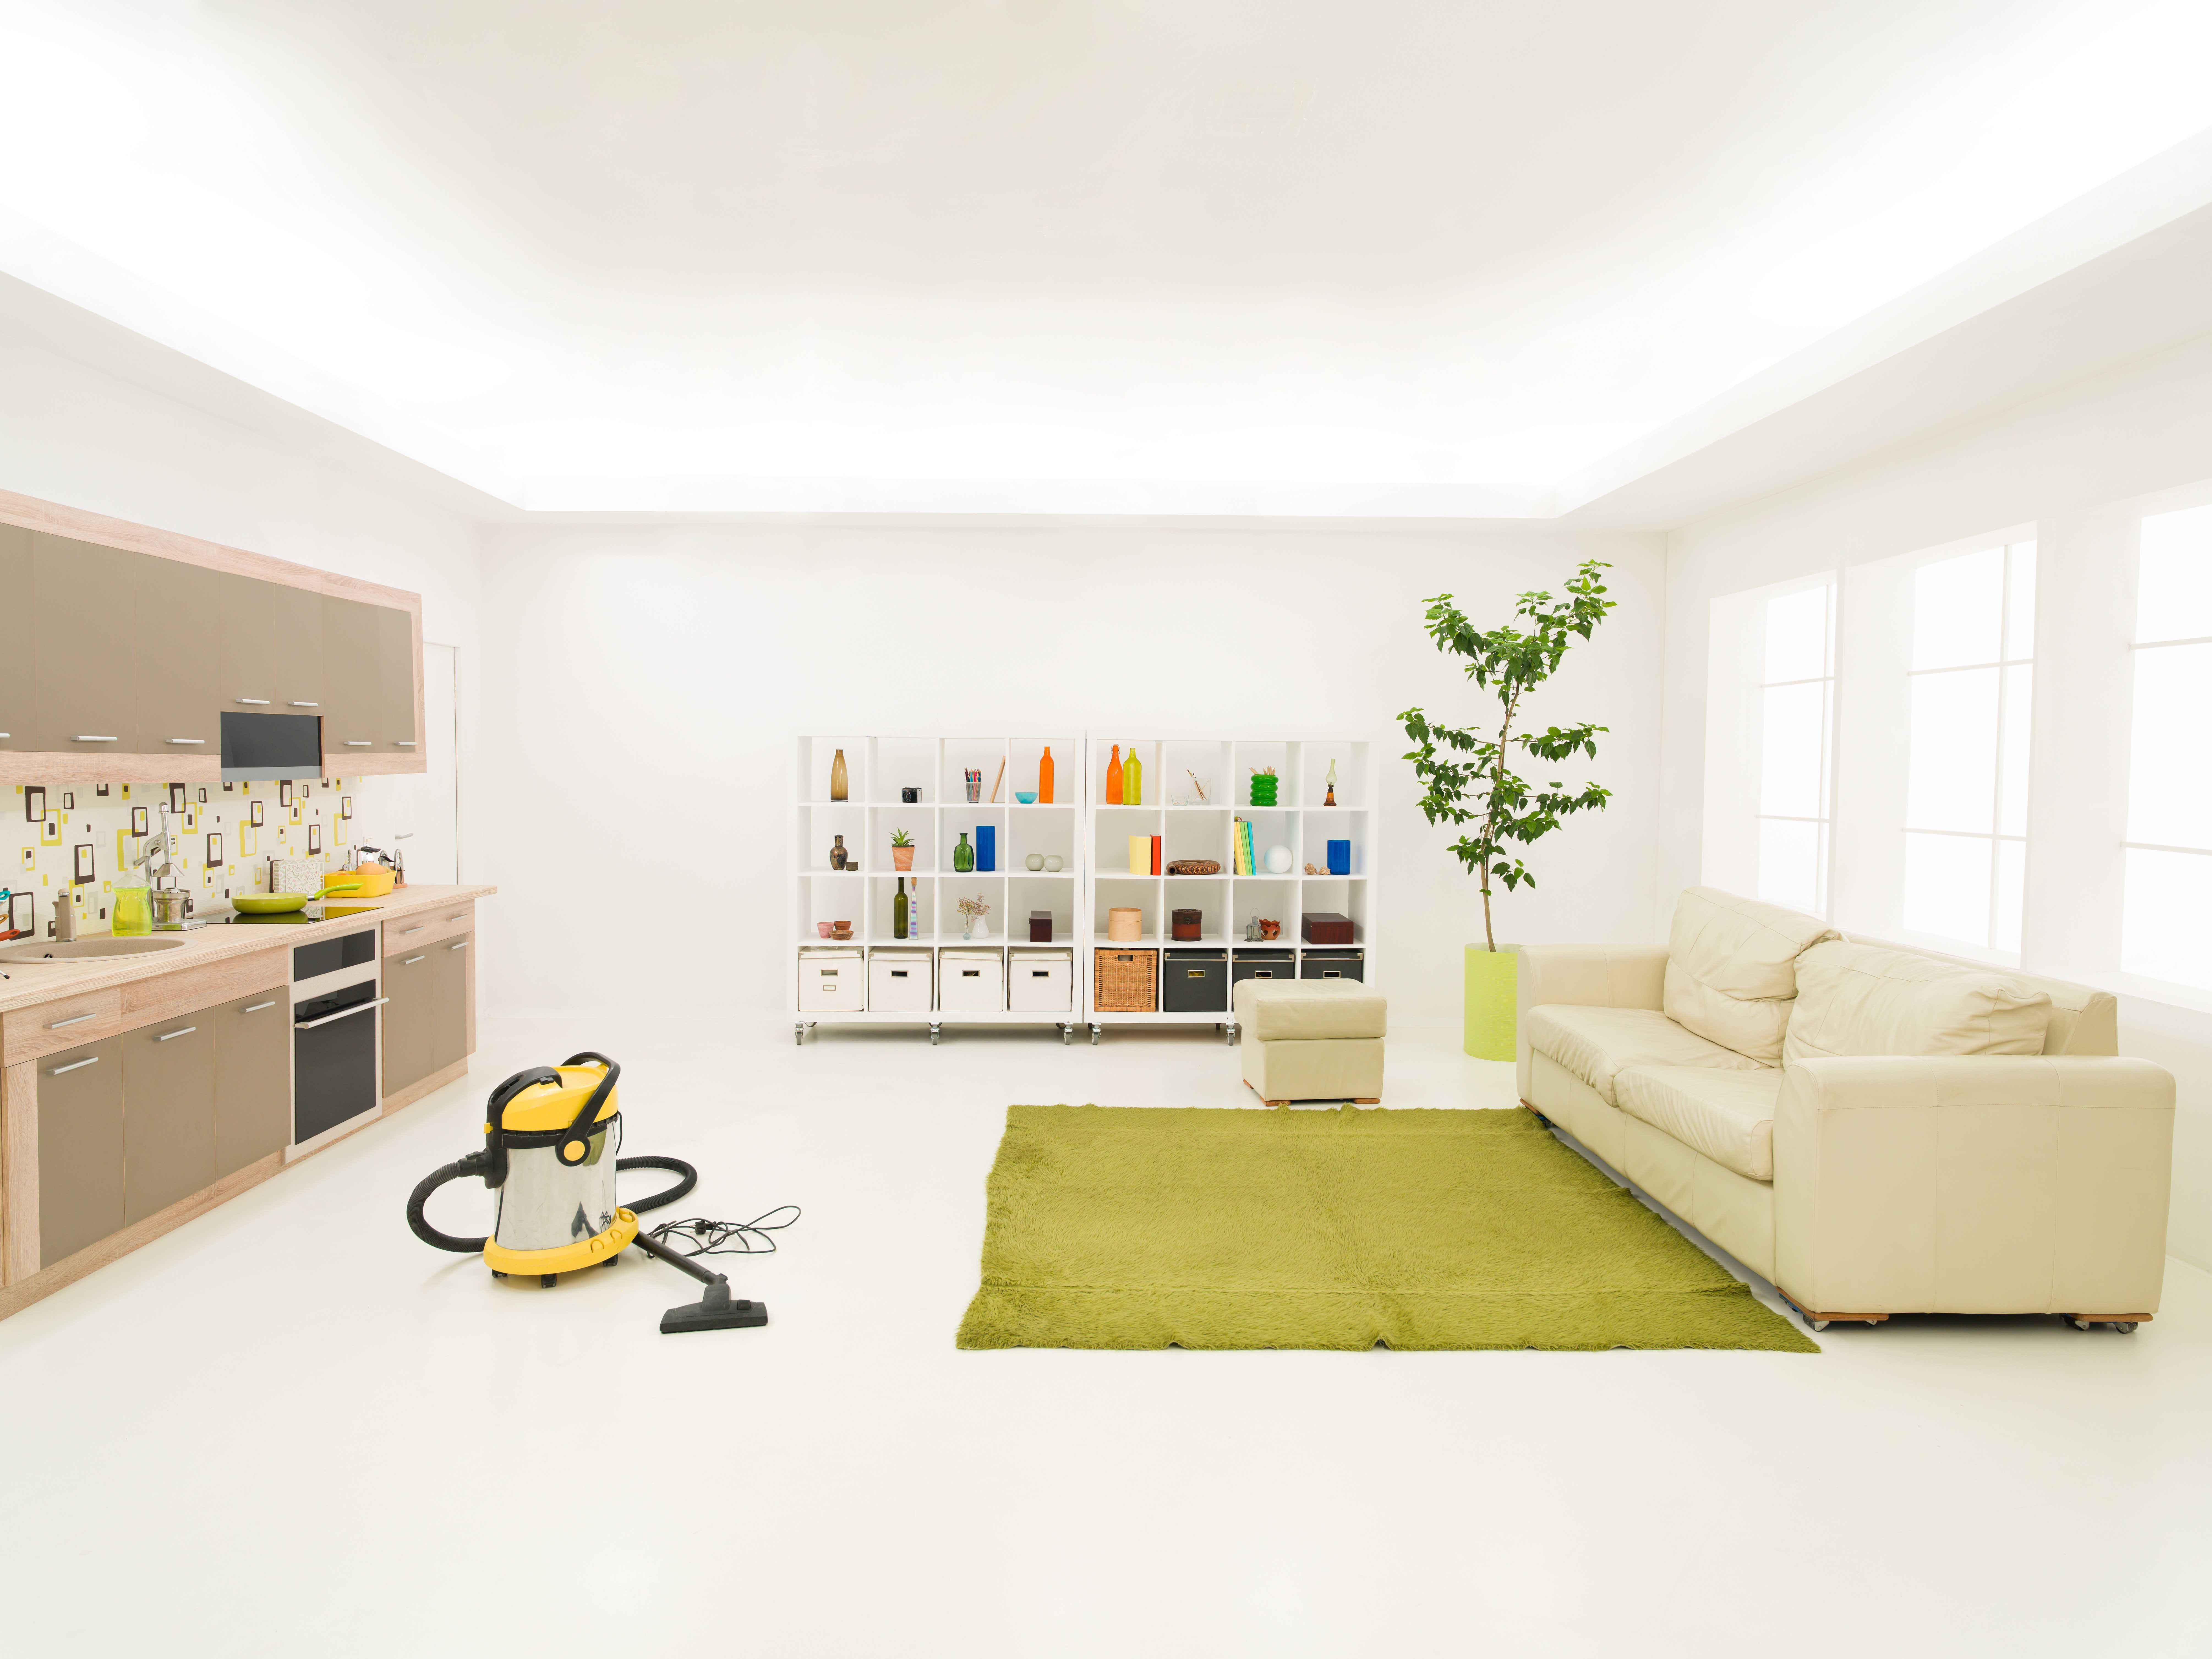 Creative Ideas For Organizing Your House